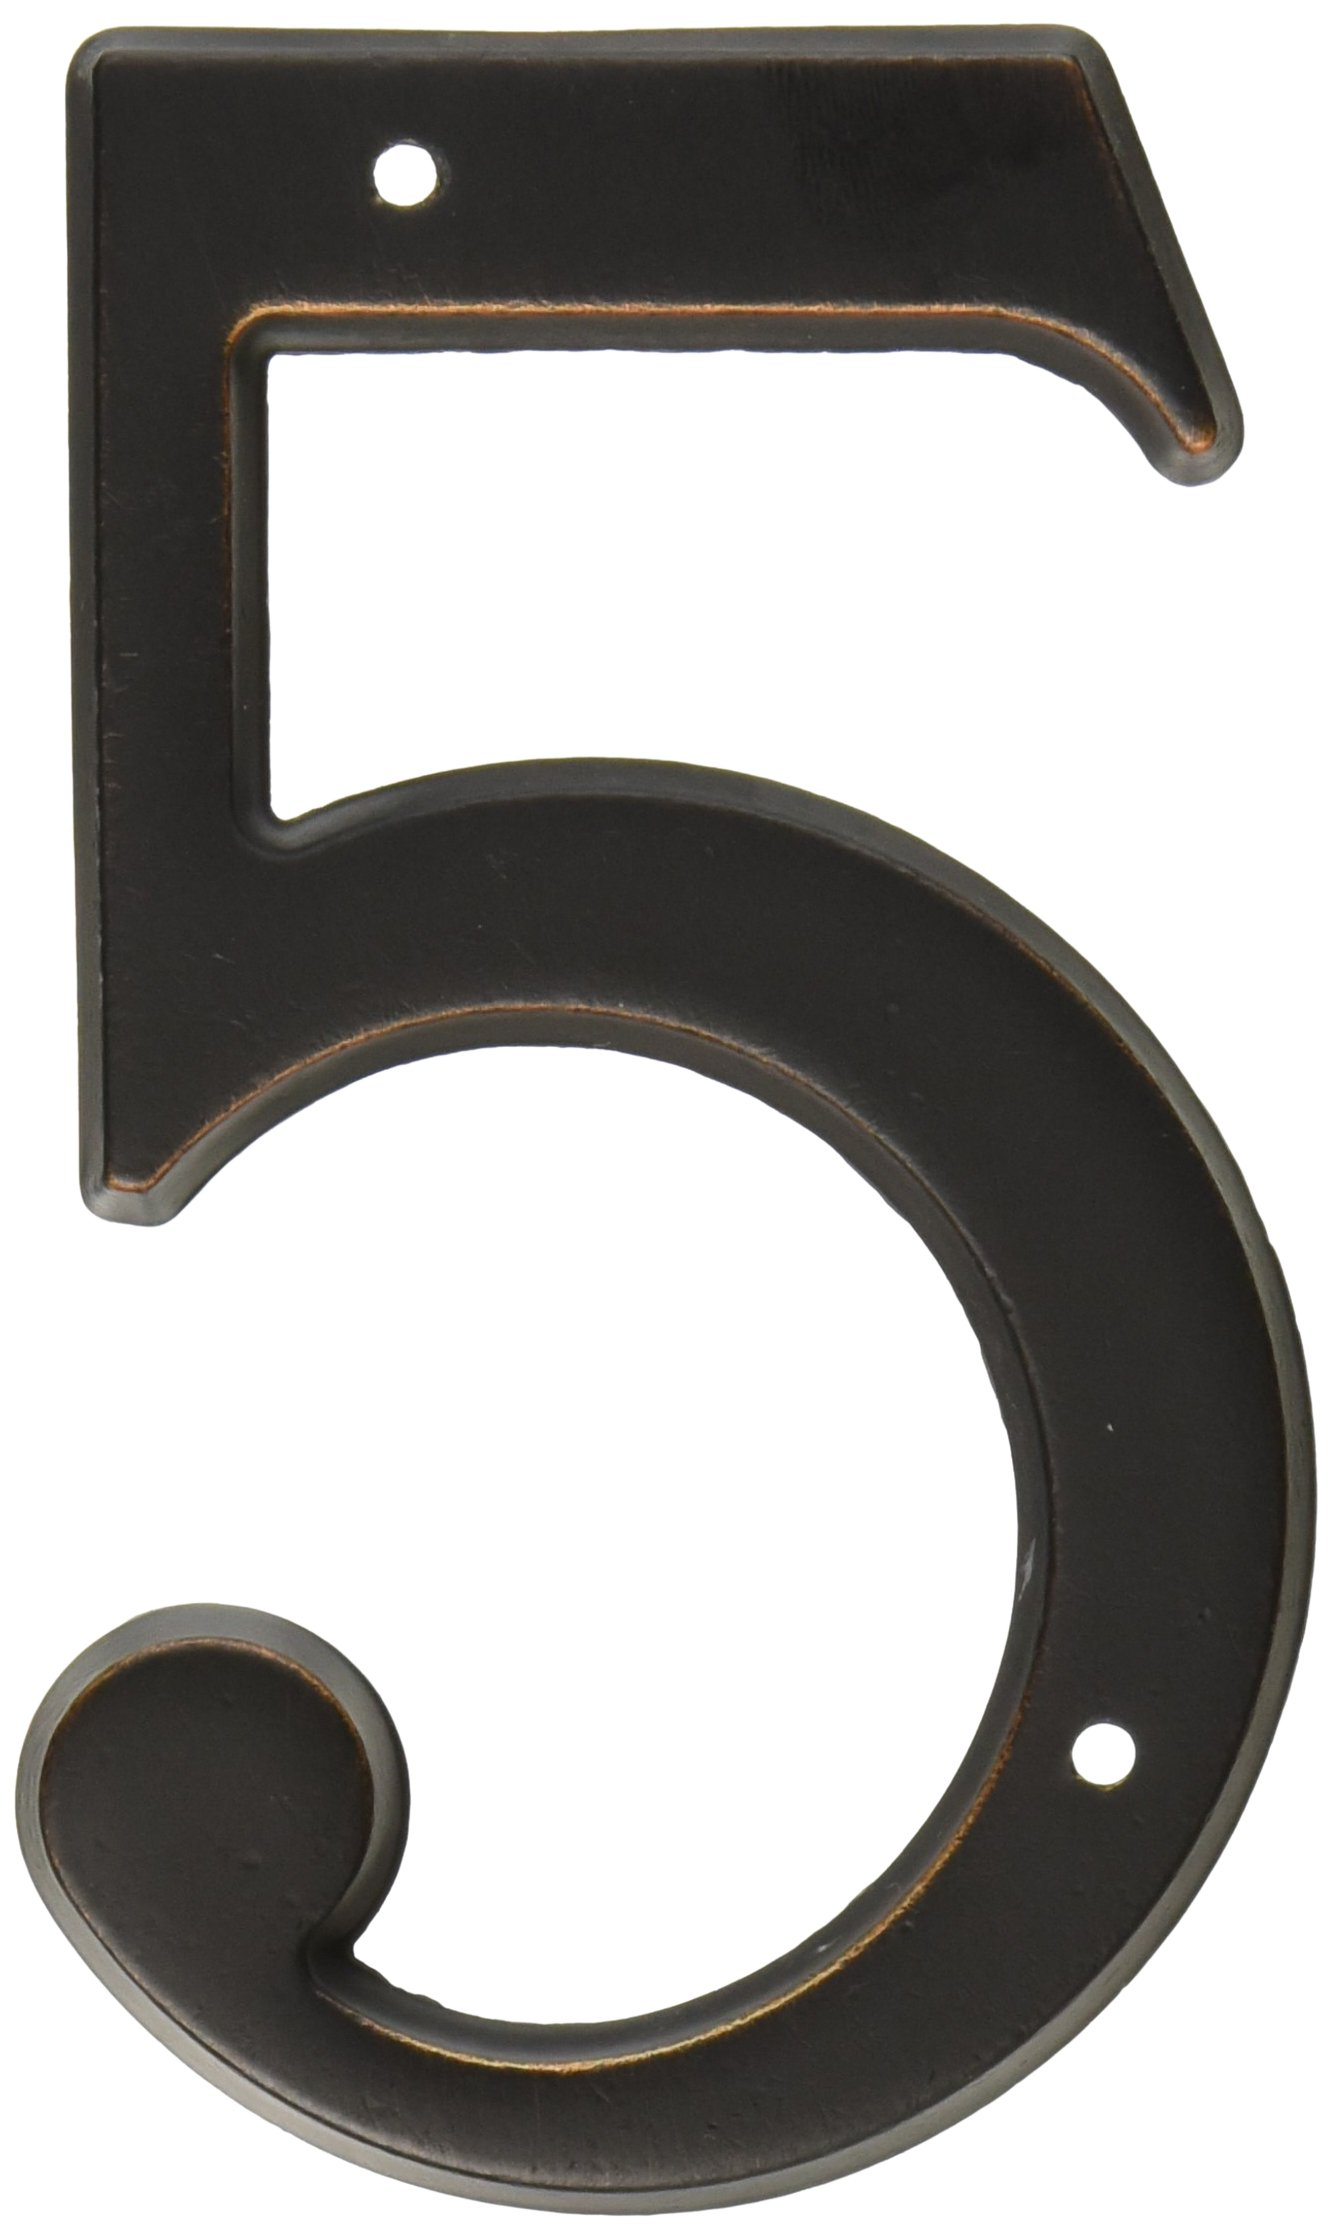 Baldwin 90675412 75 # 5 House Number, Distressed Aged Bronze